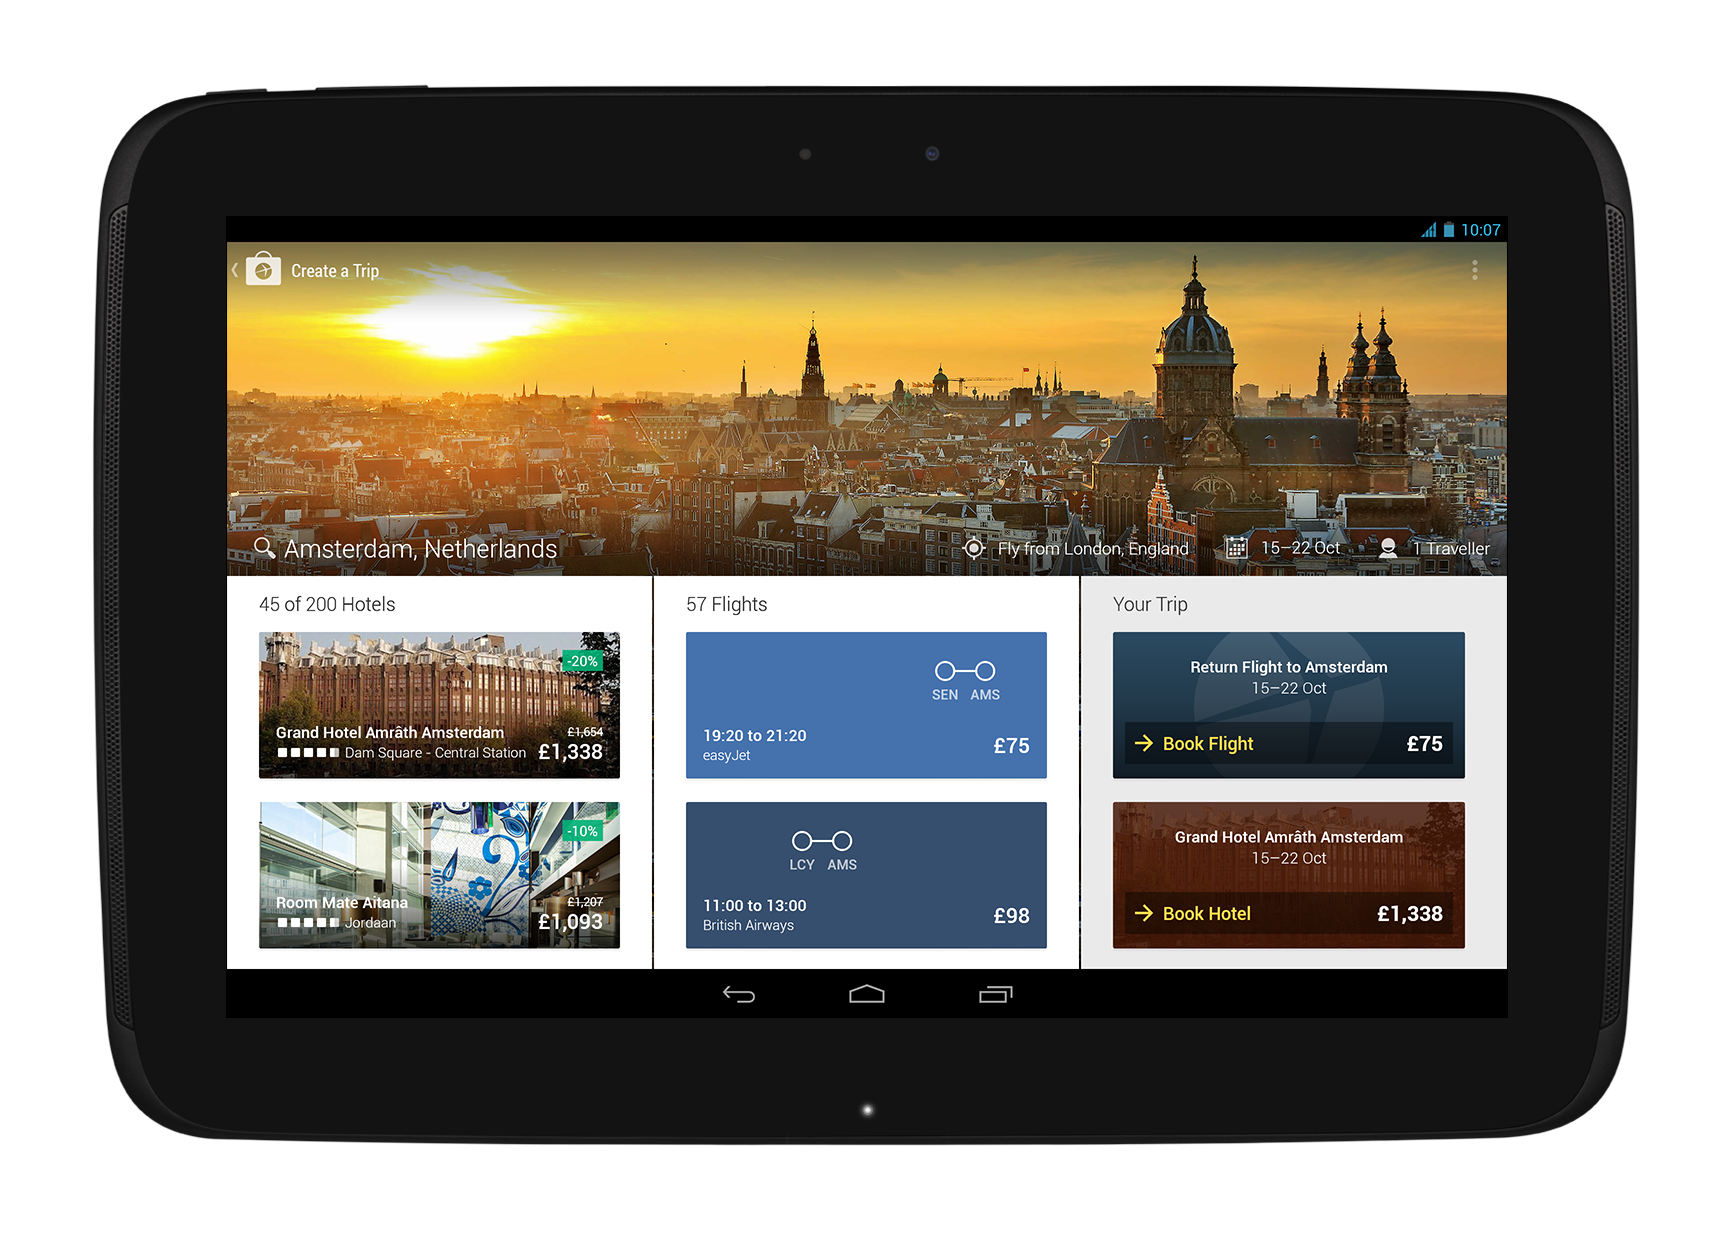 Expedia Relaunches iPad App with Enhanced Search Functionality